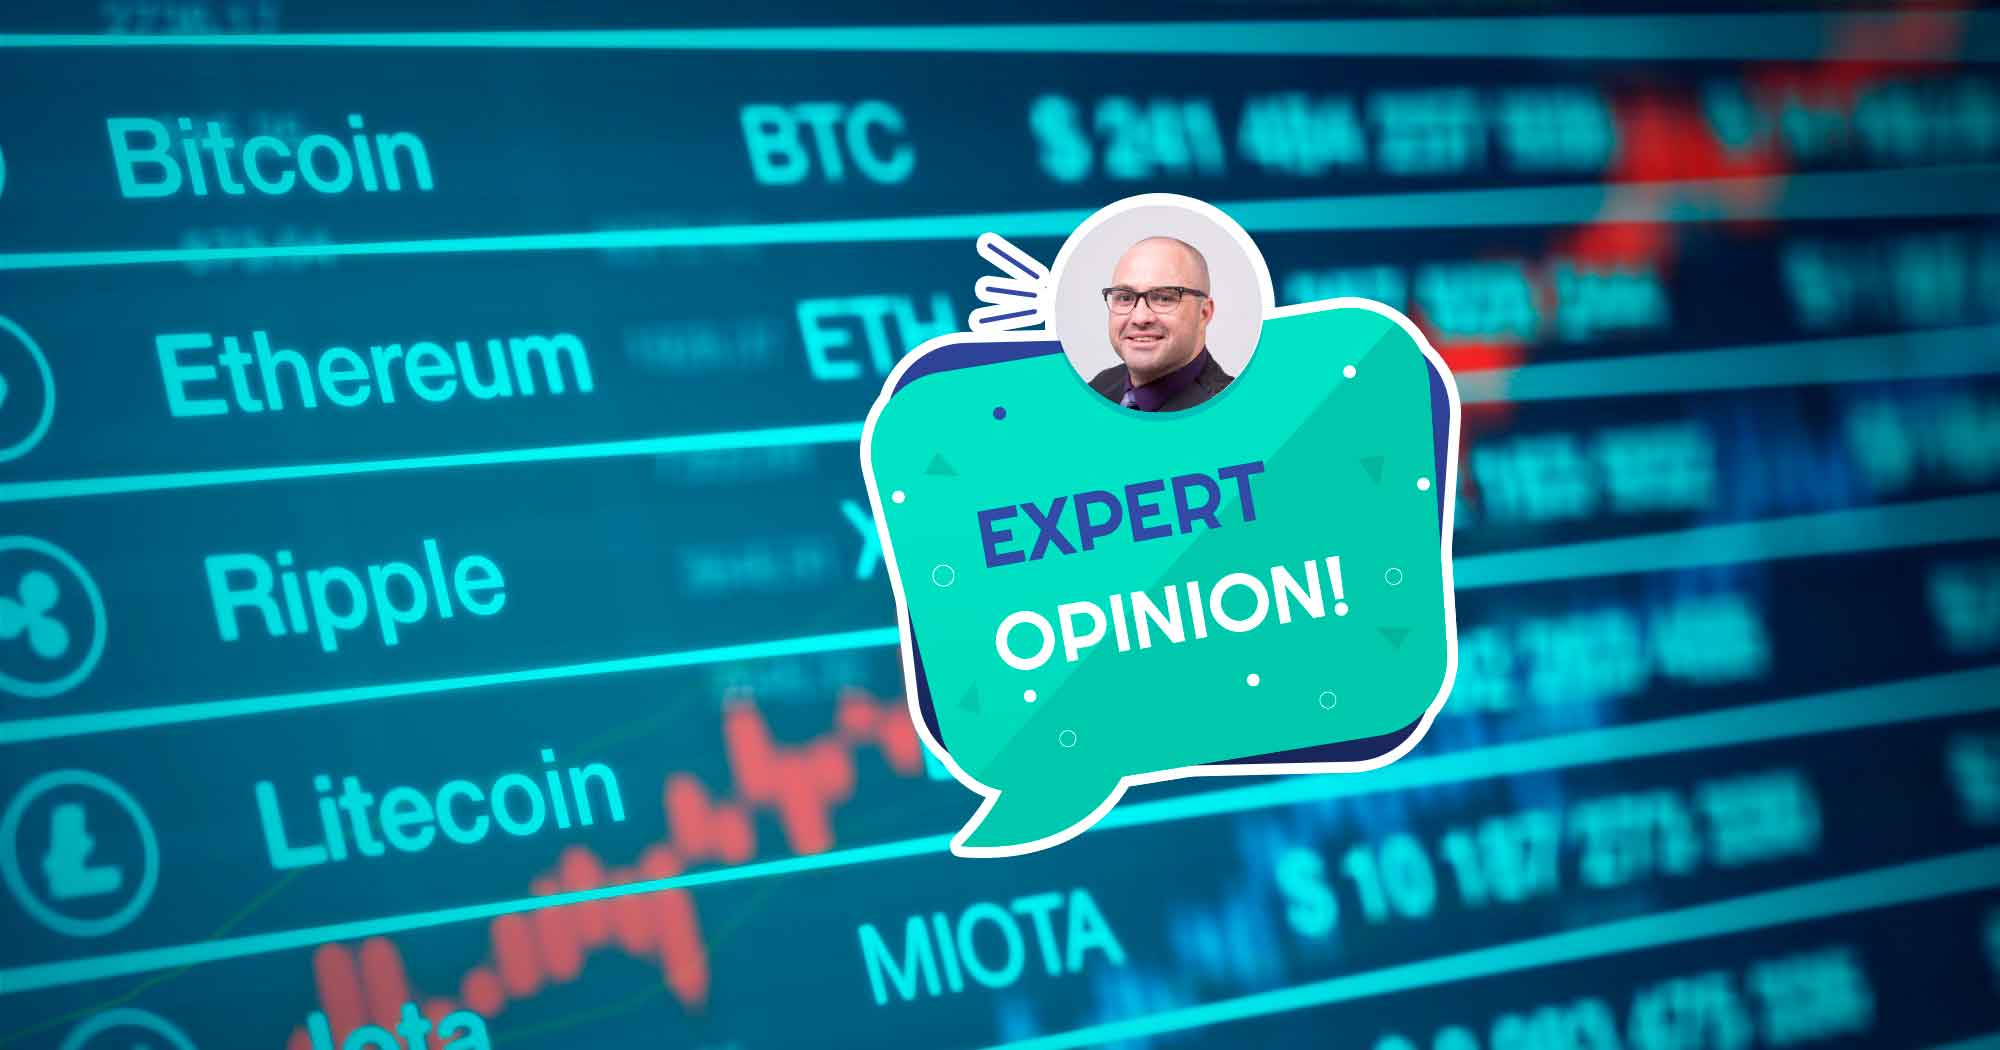 Did the US Fed Chairman's Comments on Libra Cause the Drop in Bitcoin? - Expert Opinion